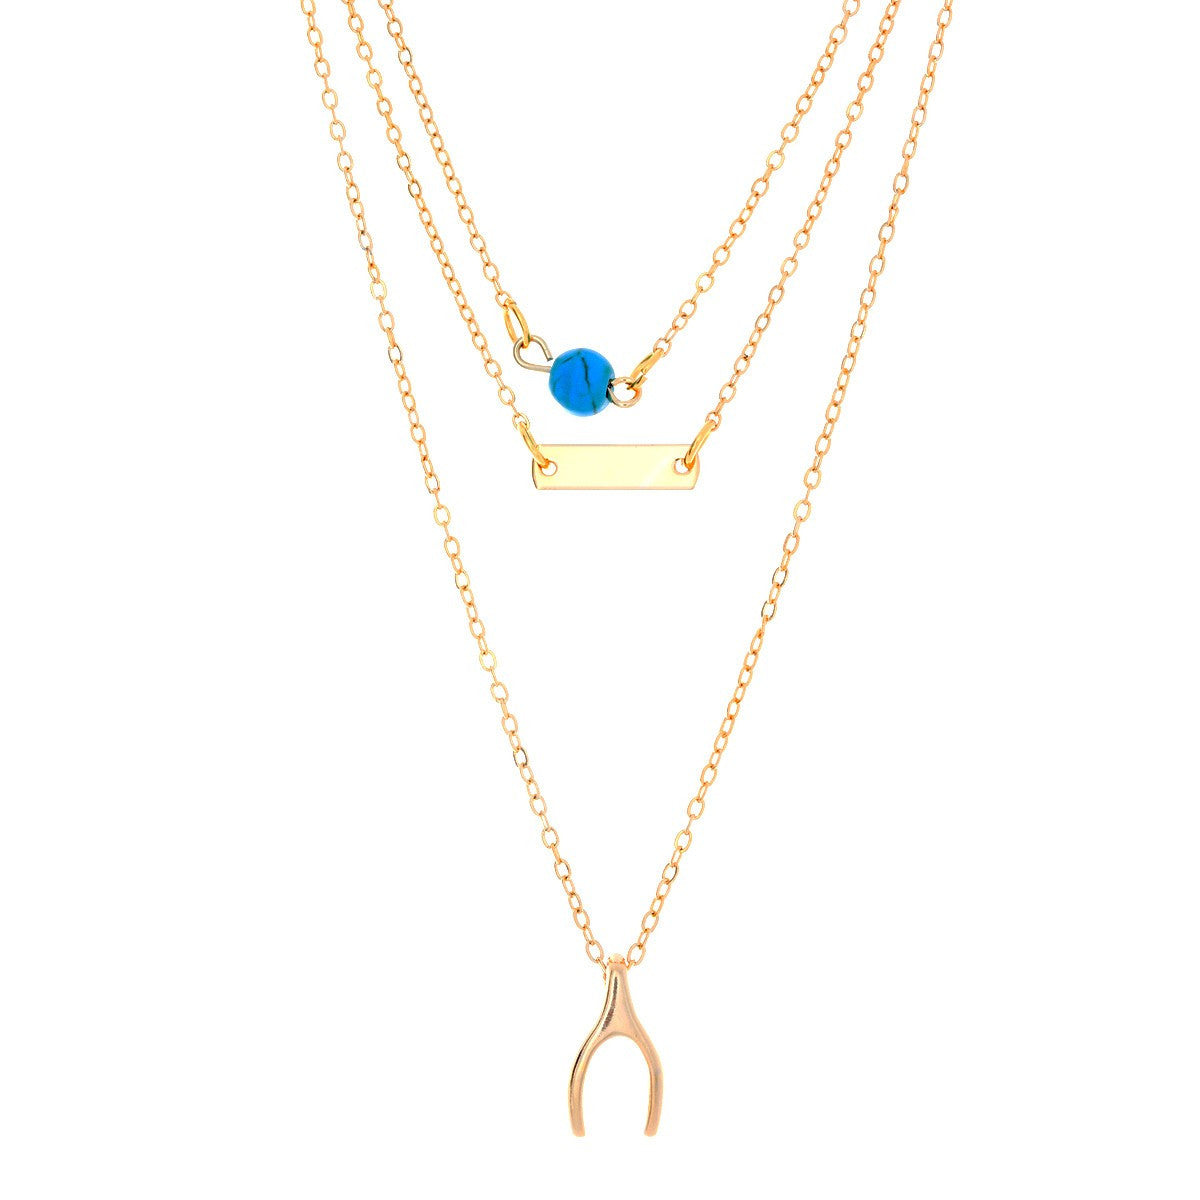 necklace blue diamond gold for pendant women white single heart